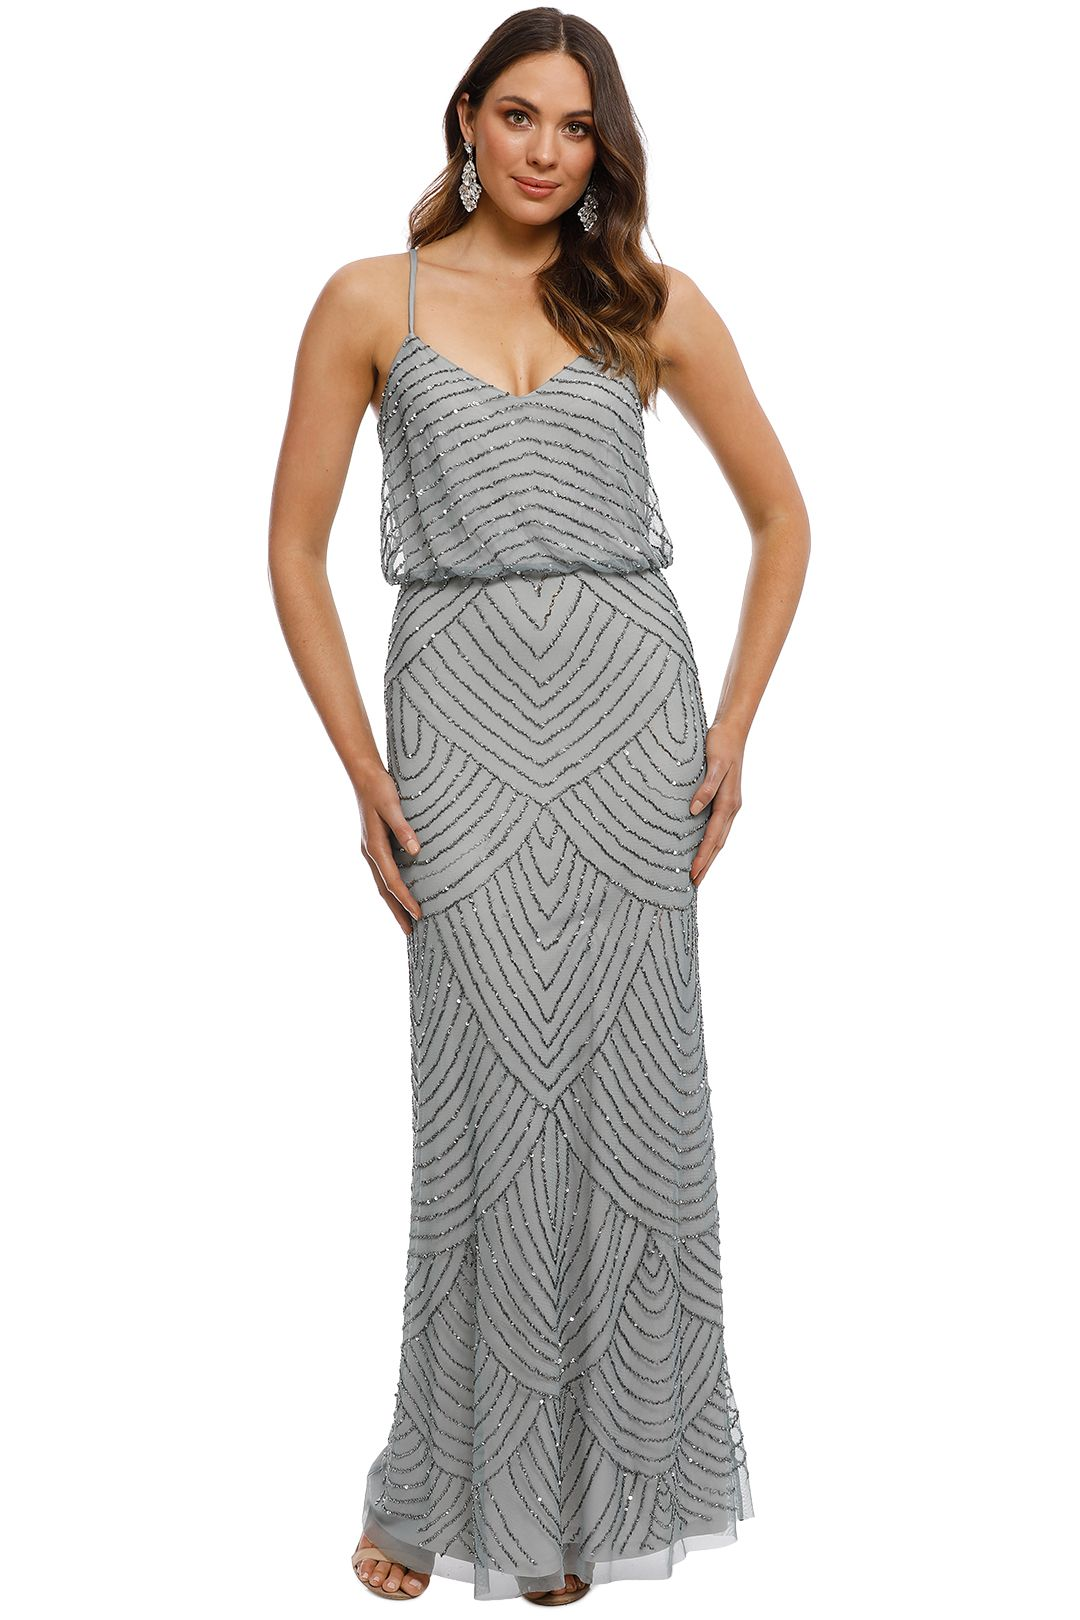 Adrianna Papell - Art Deco Beaded Gown - Dusty Blue - Front